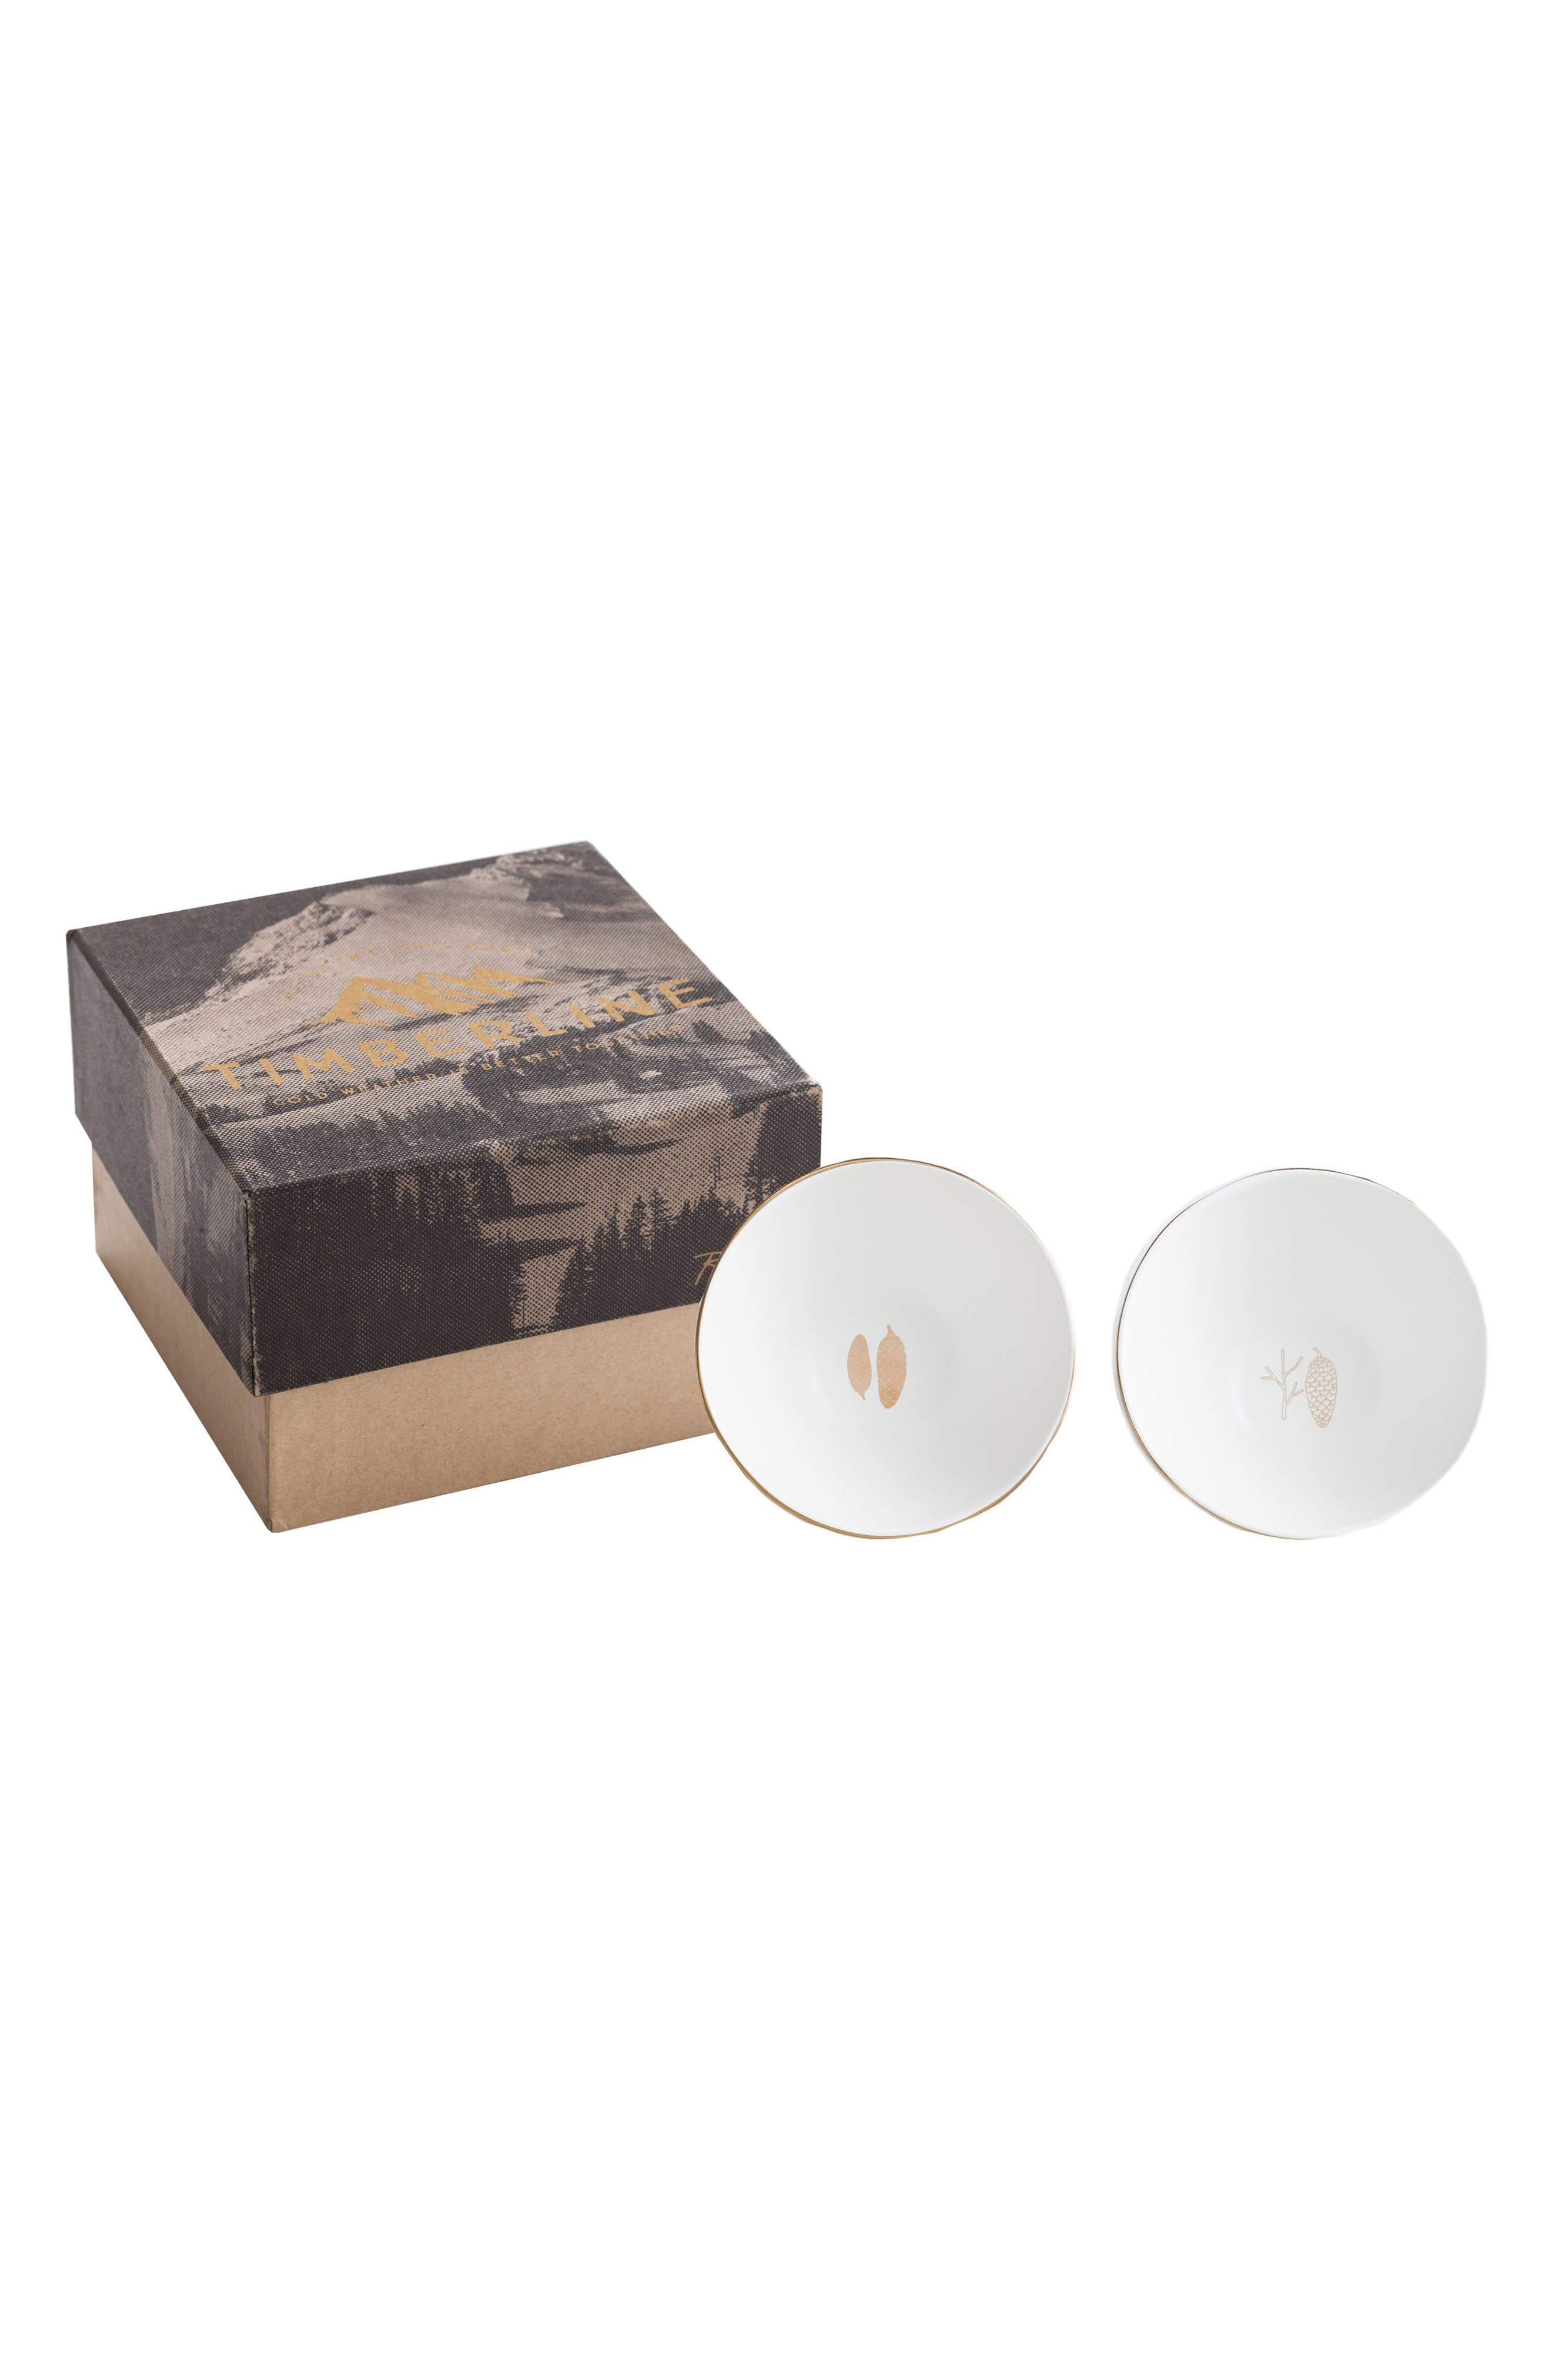 Timberline Set of 2 Porcelain Plates,                             Main thumbnail 1, color,                             White/ Gold